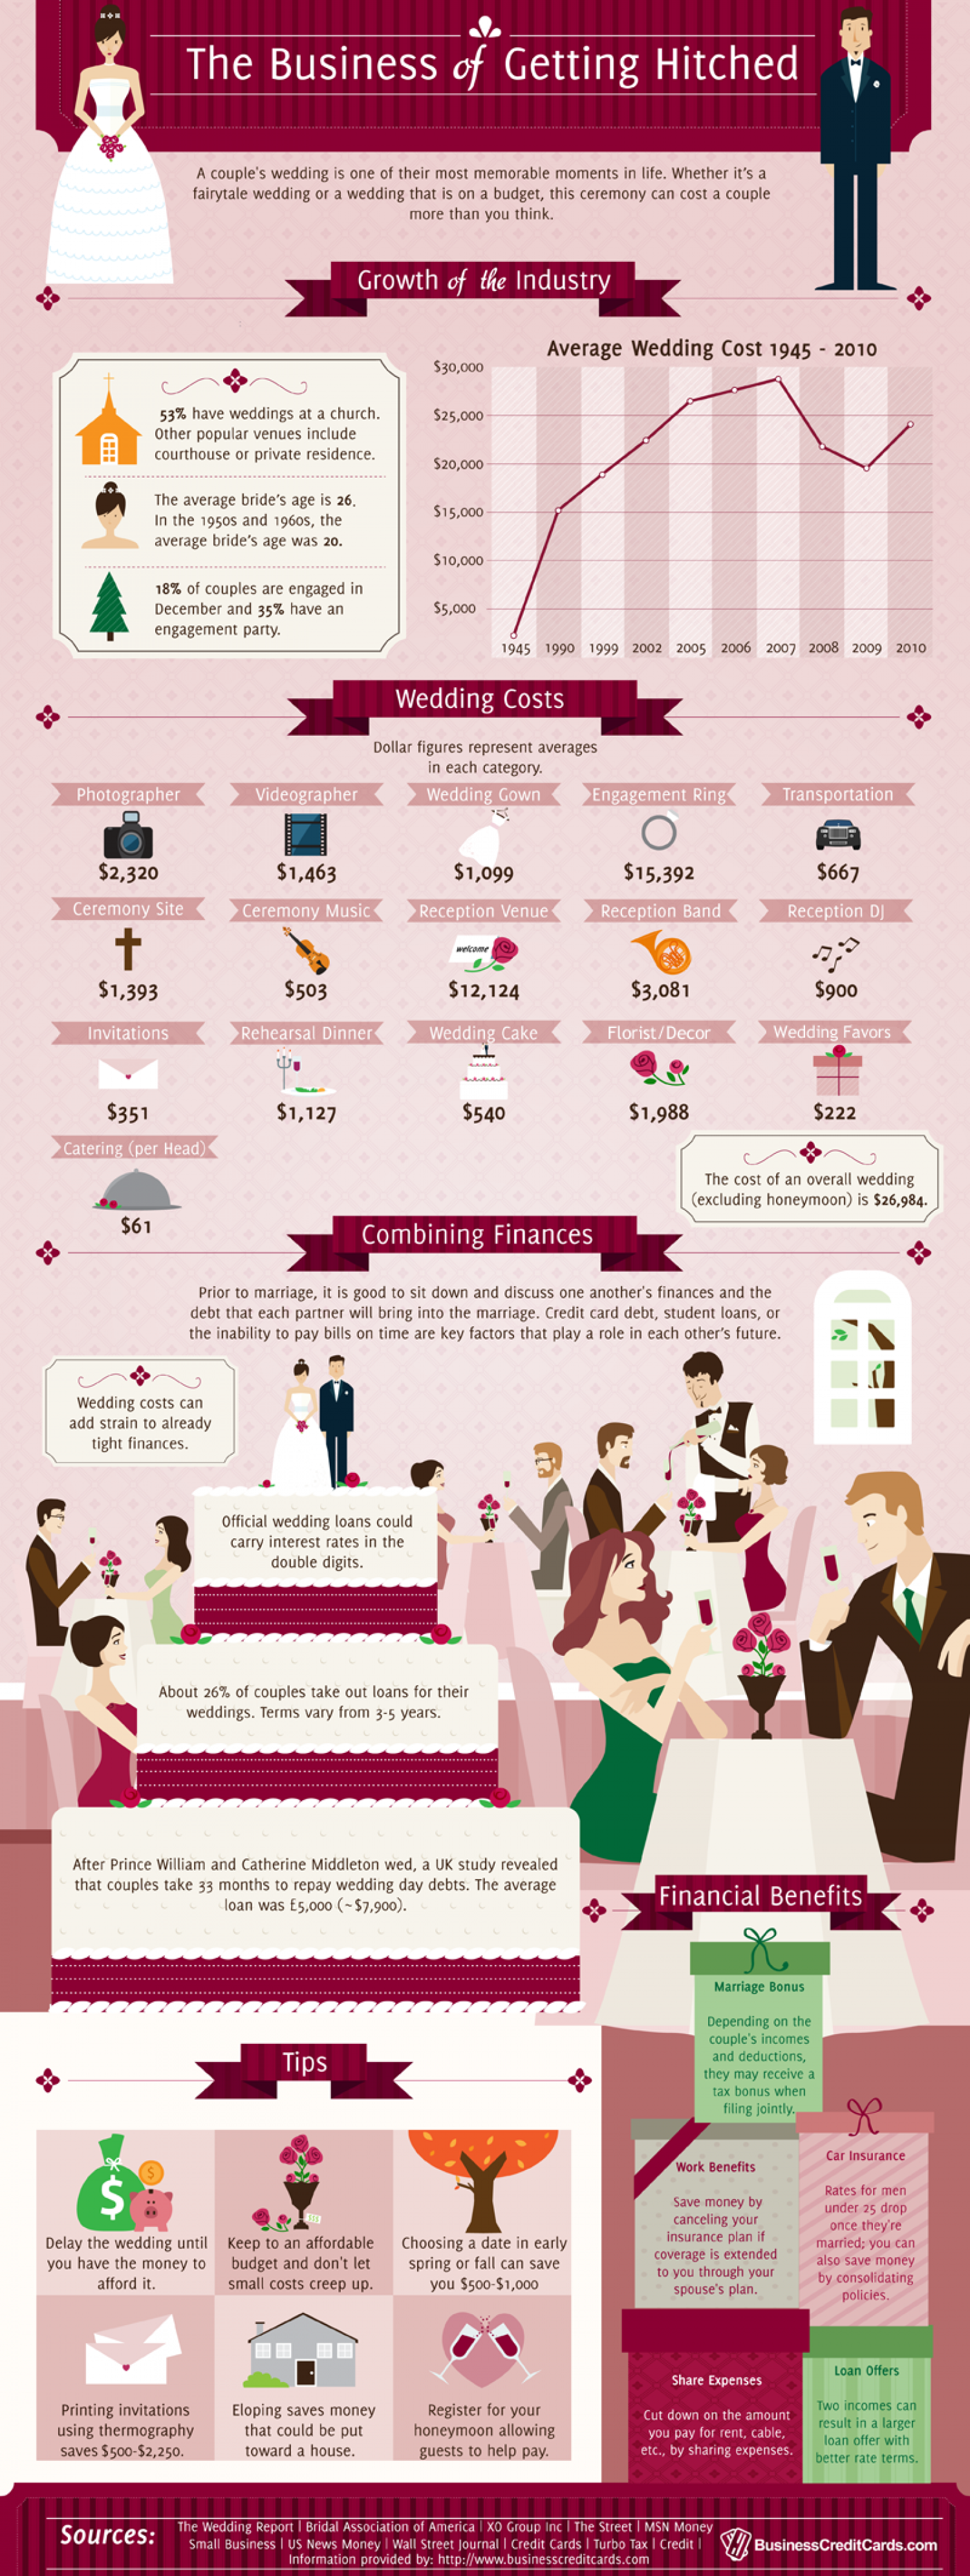 The Business of Getting Hitched Infographic